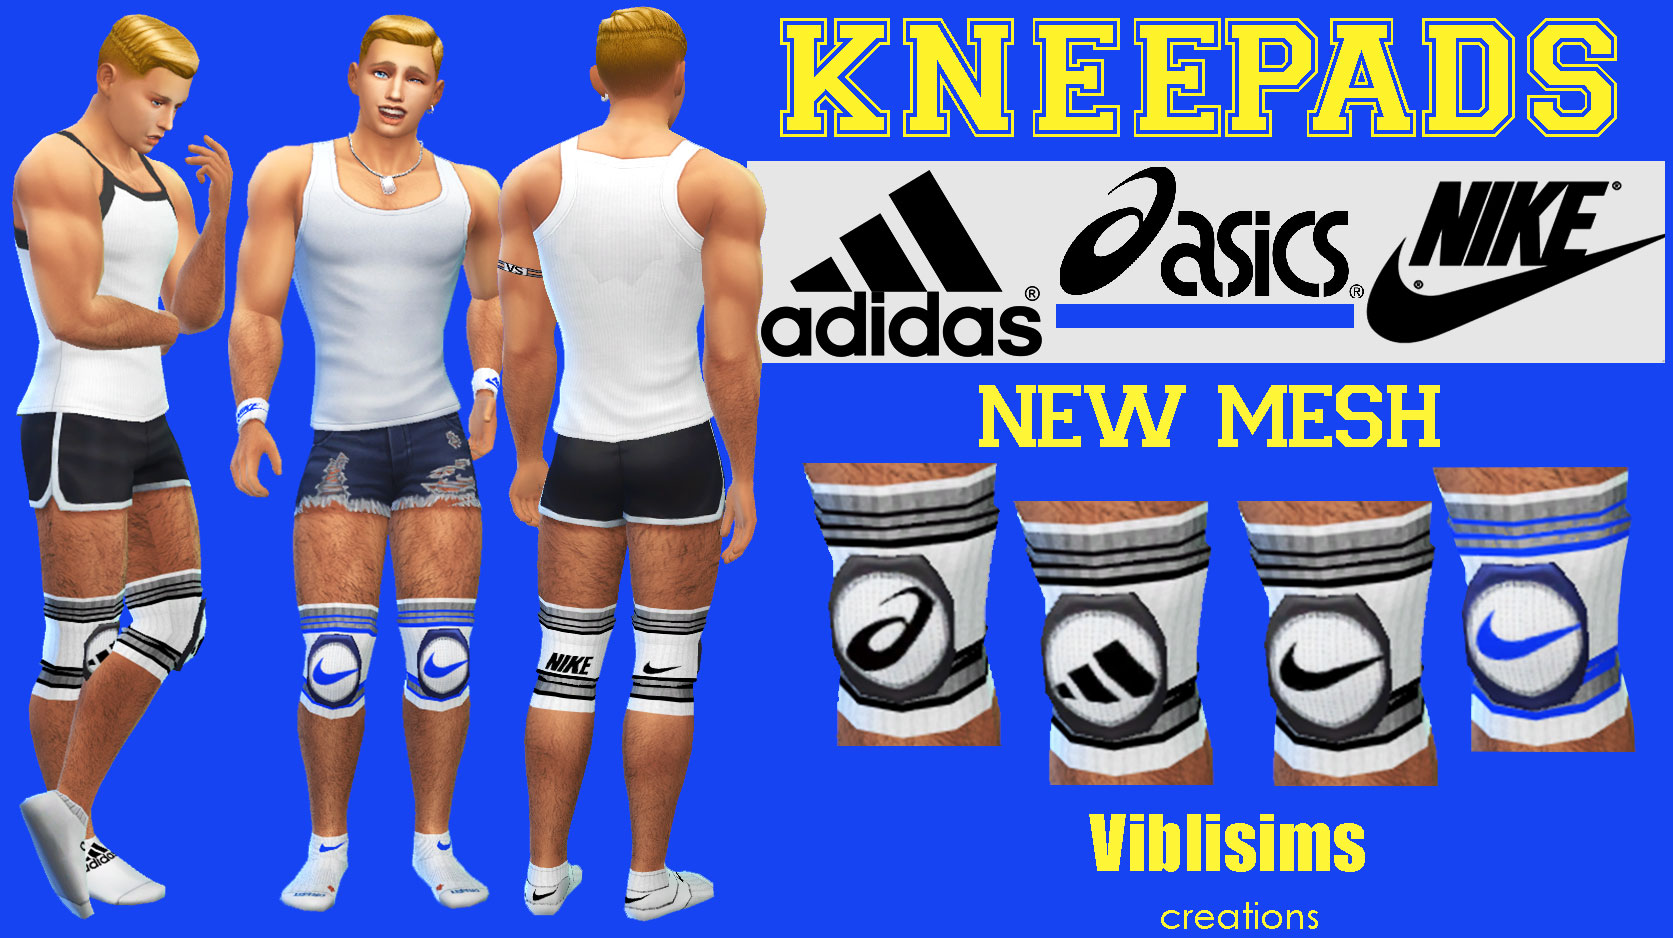 bonita y colorida el mejor último Mod The Sims - KNEEPADS. Adidas, Asics and Nike